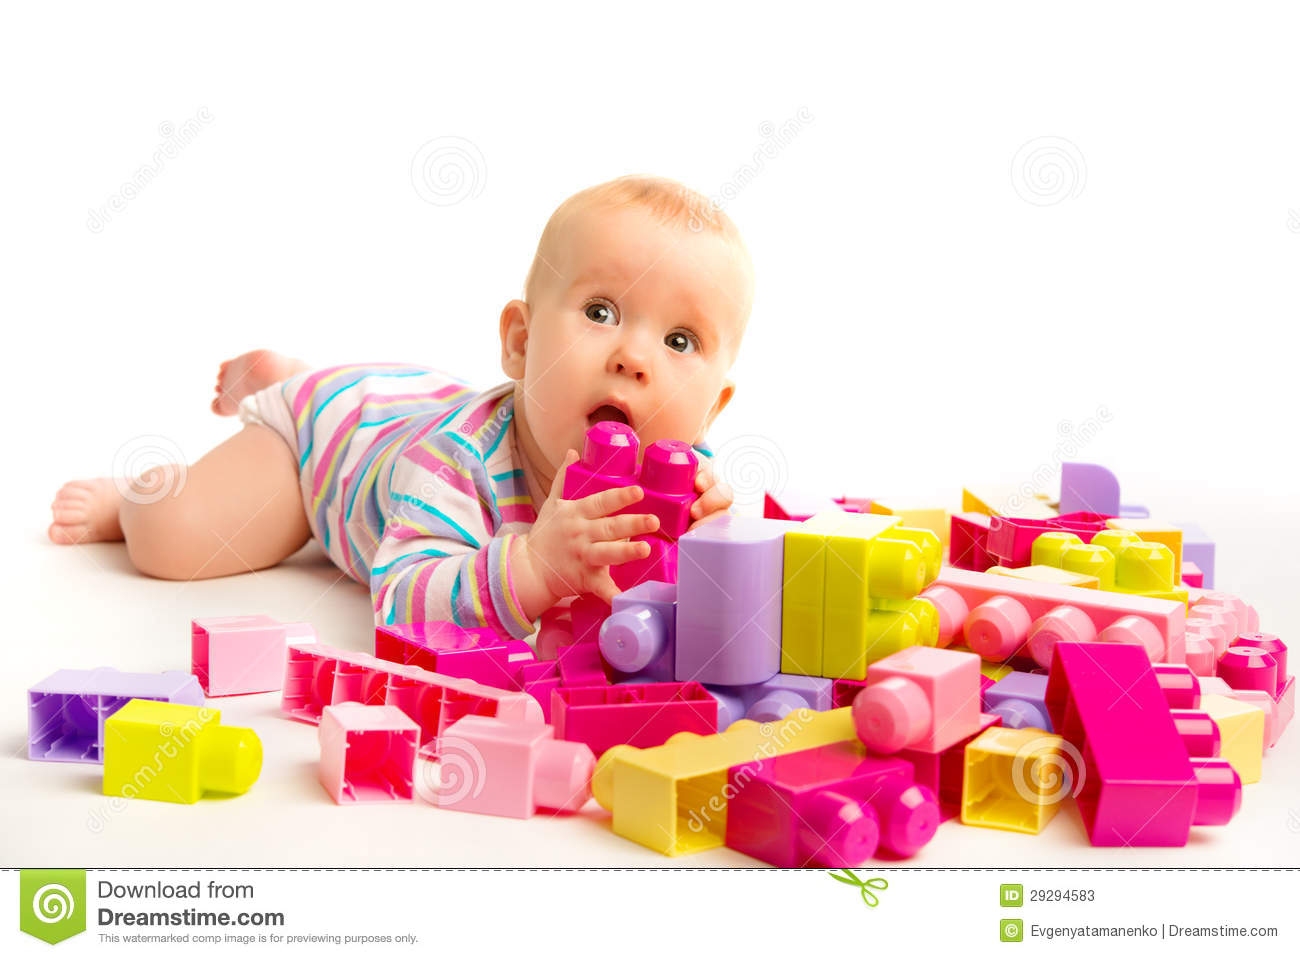 Children S Playroom Baby Playing In Designer Toy Blocks Stock Image Image Of